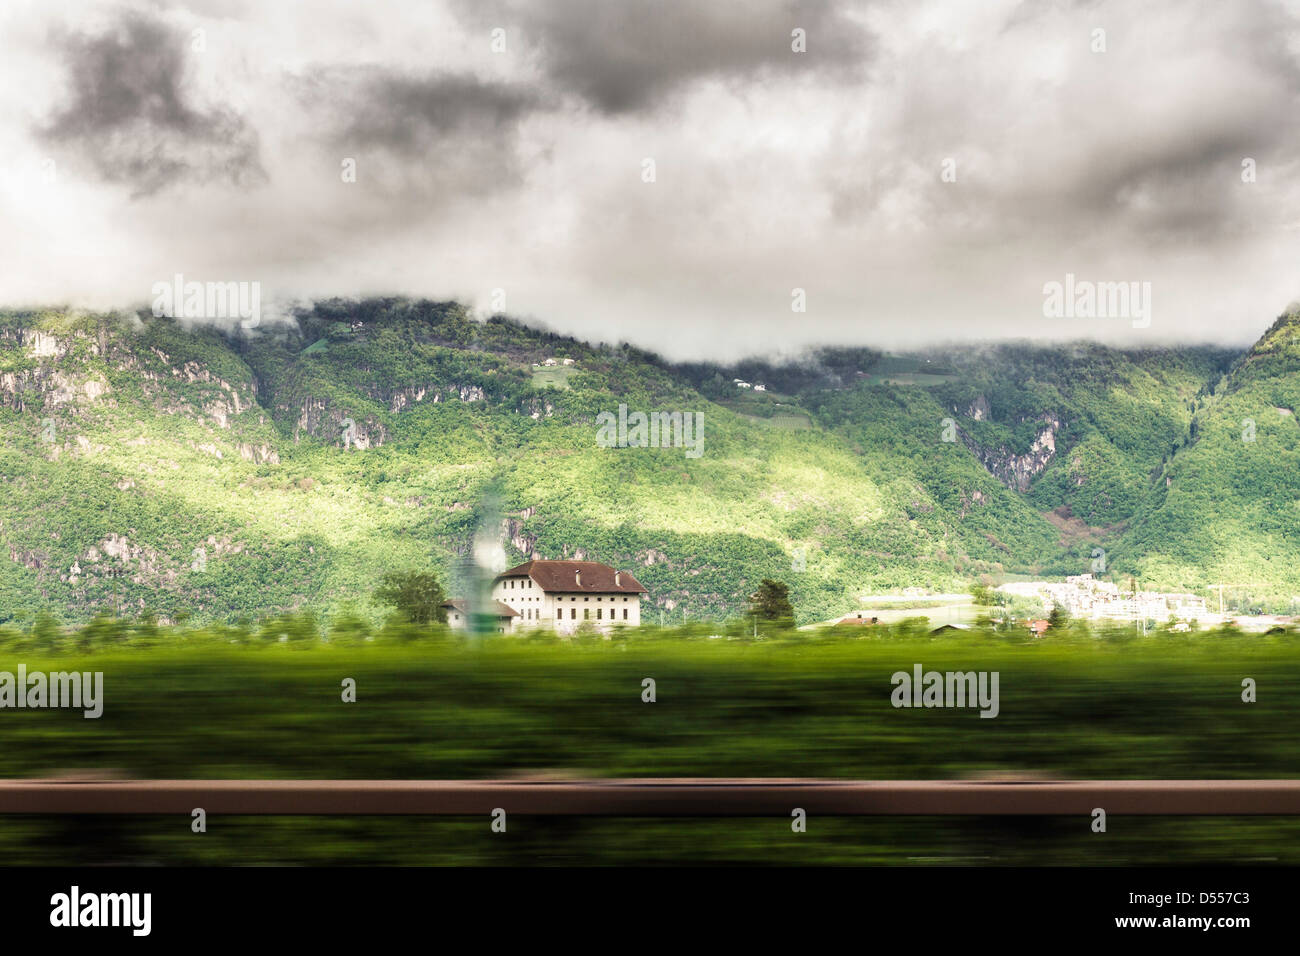 Mansion in rural landscape - Stock Image